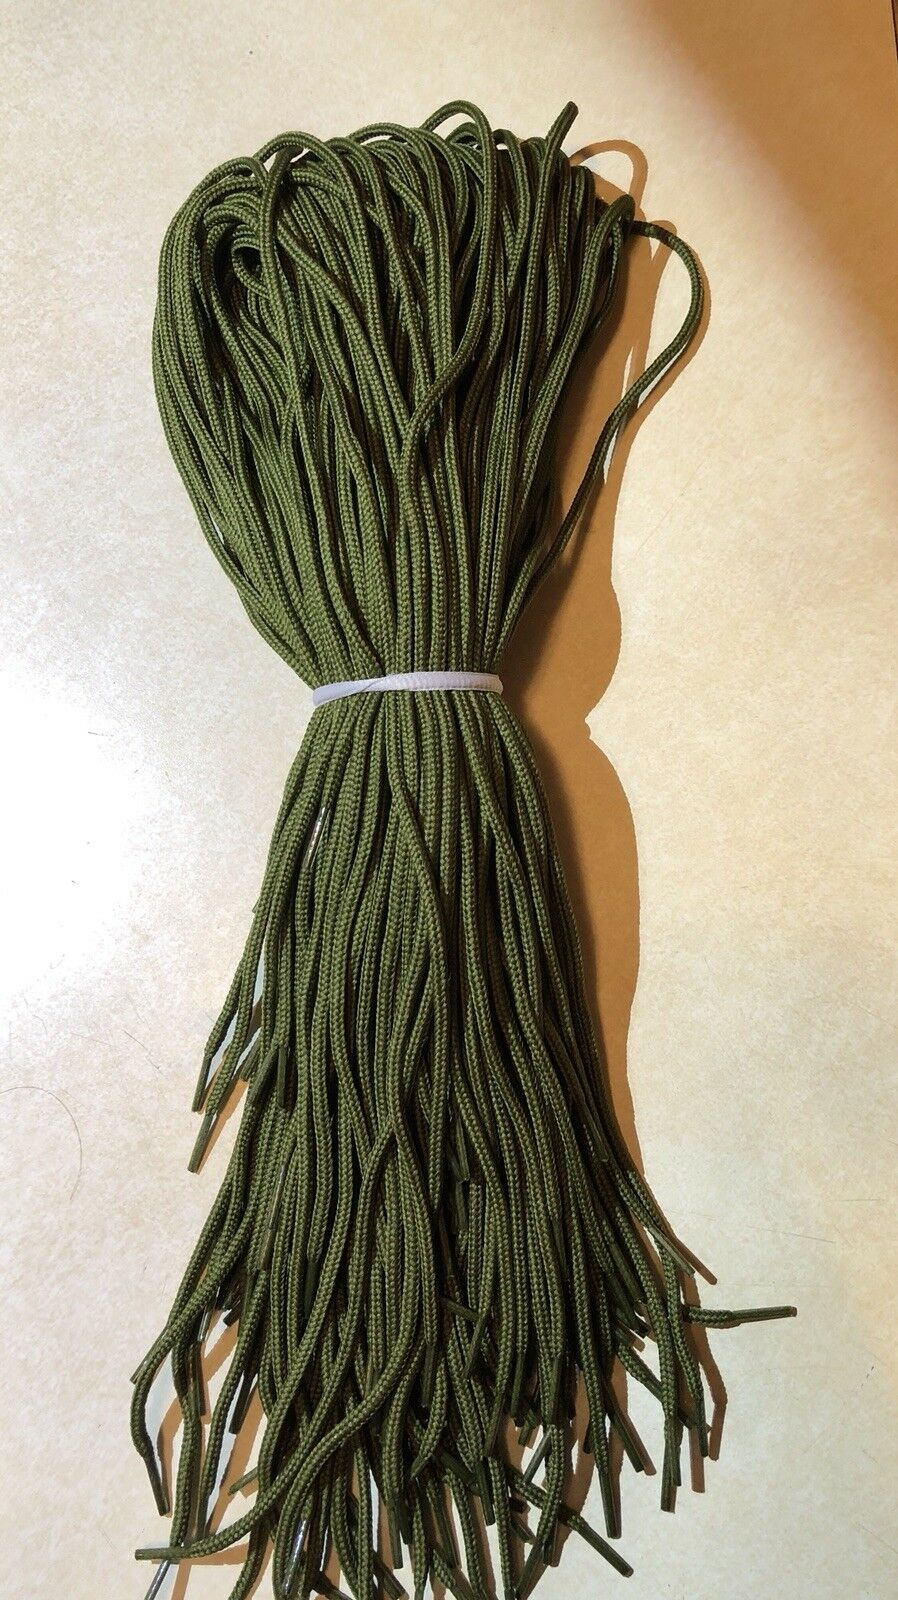 schuhe LACES IN BULK 250 PAIRS. 30 Inches